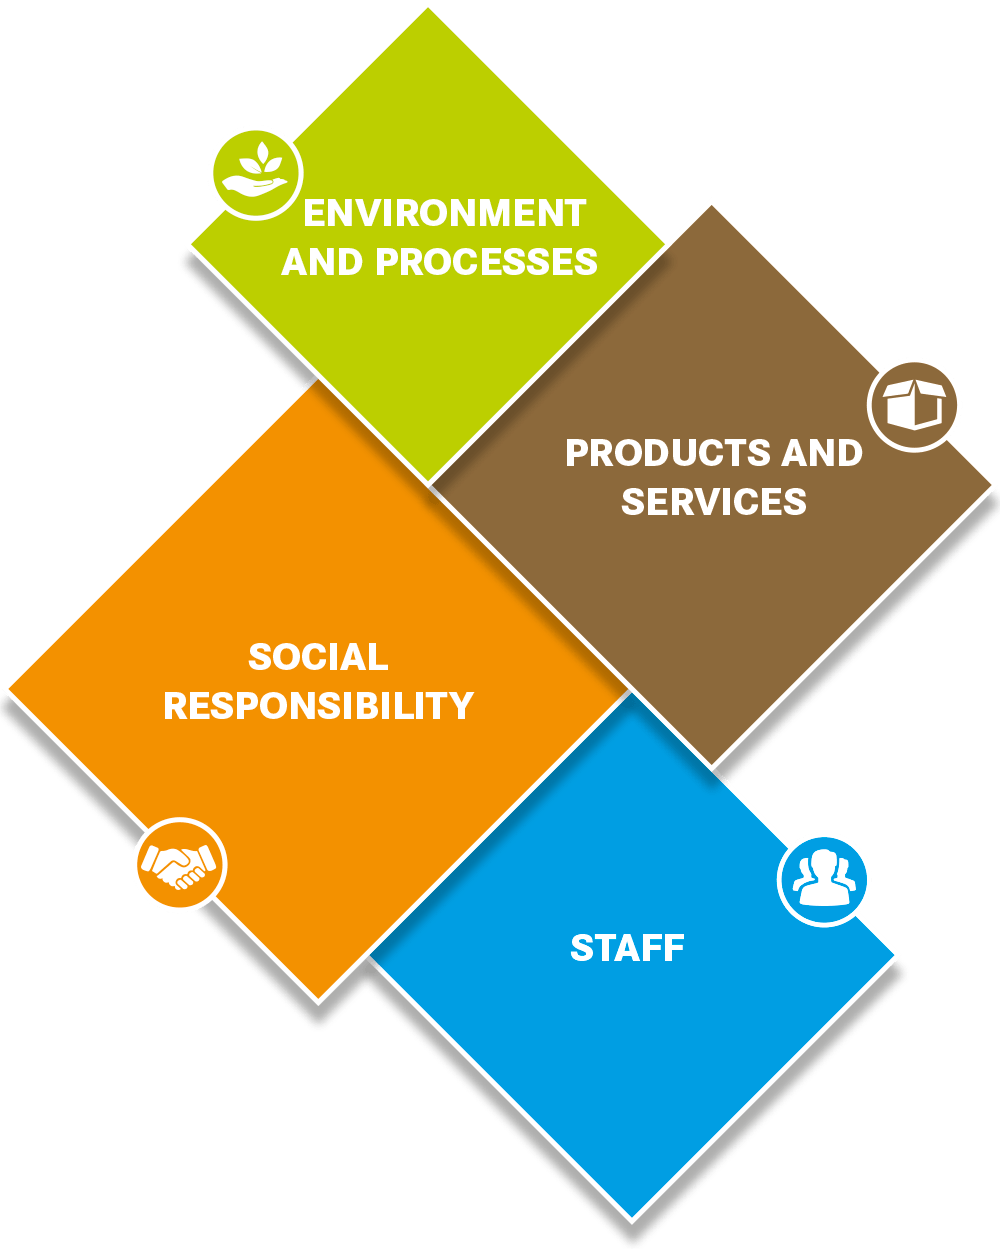 Our 4 pillars of sustainability